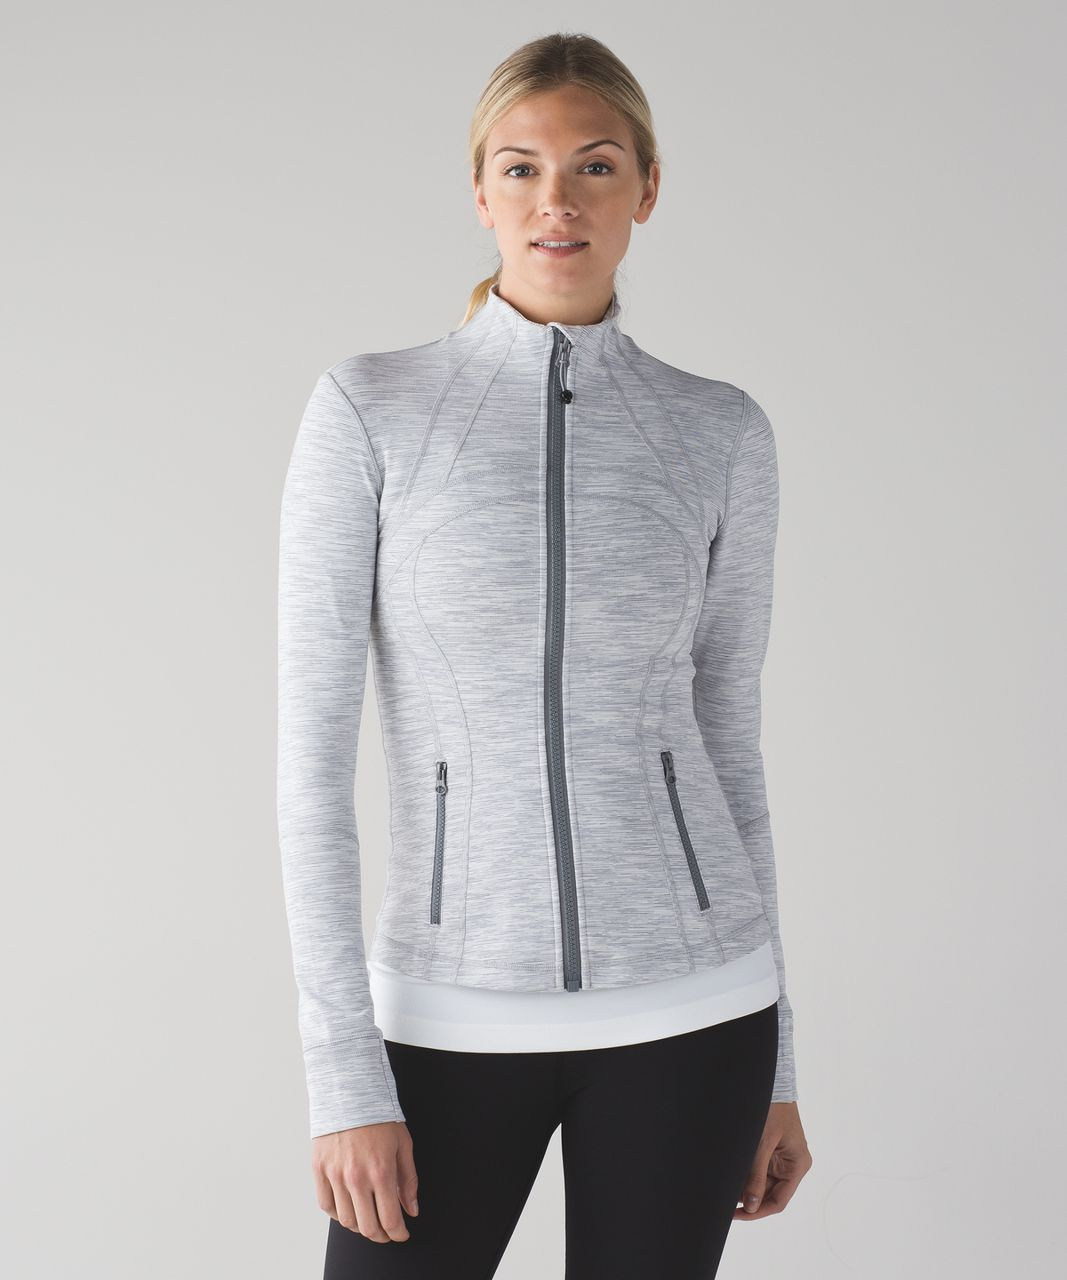 Lululemon Define Jacket - Wee Are From Space Nimbus Battleship (First Release)